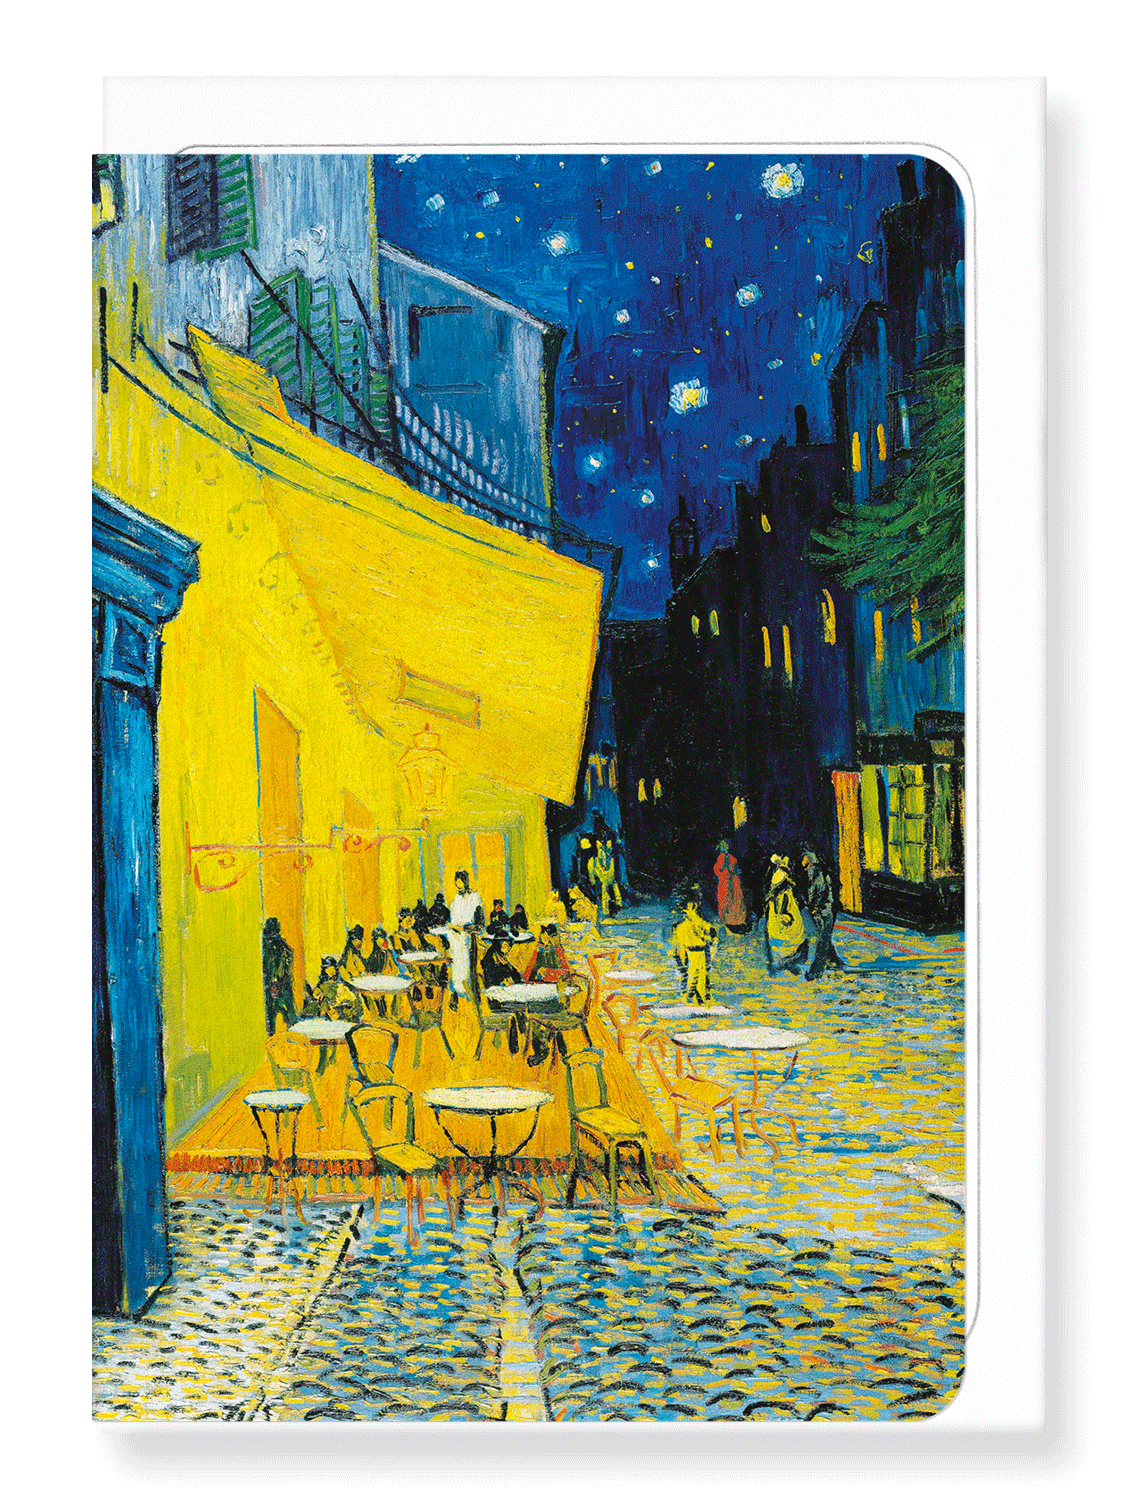 Ezen Designs - Café terrace at night by van gogh - Greeting Card - Front